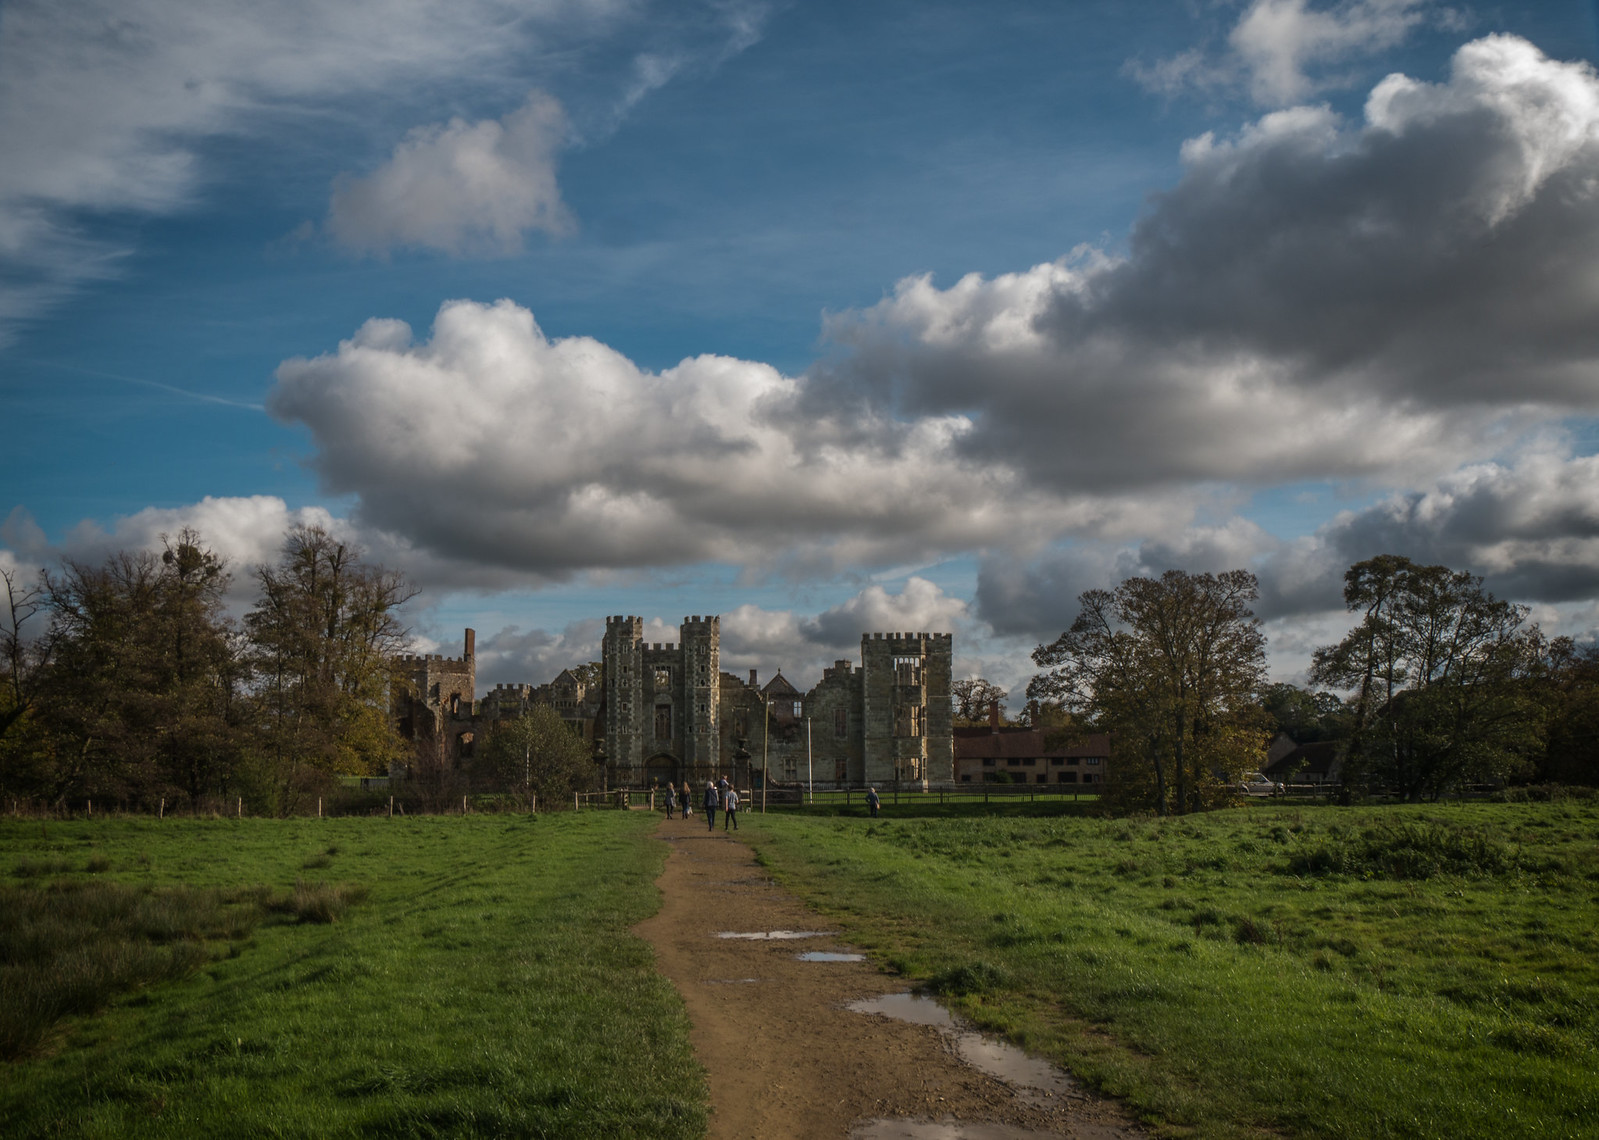 Cowdray House ruins, Panasonic DMC-G5, Lumix G Vario 14-140mm F3.5-5.6 Asph. Power OIS